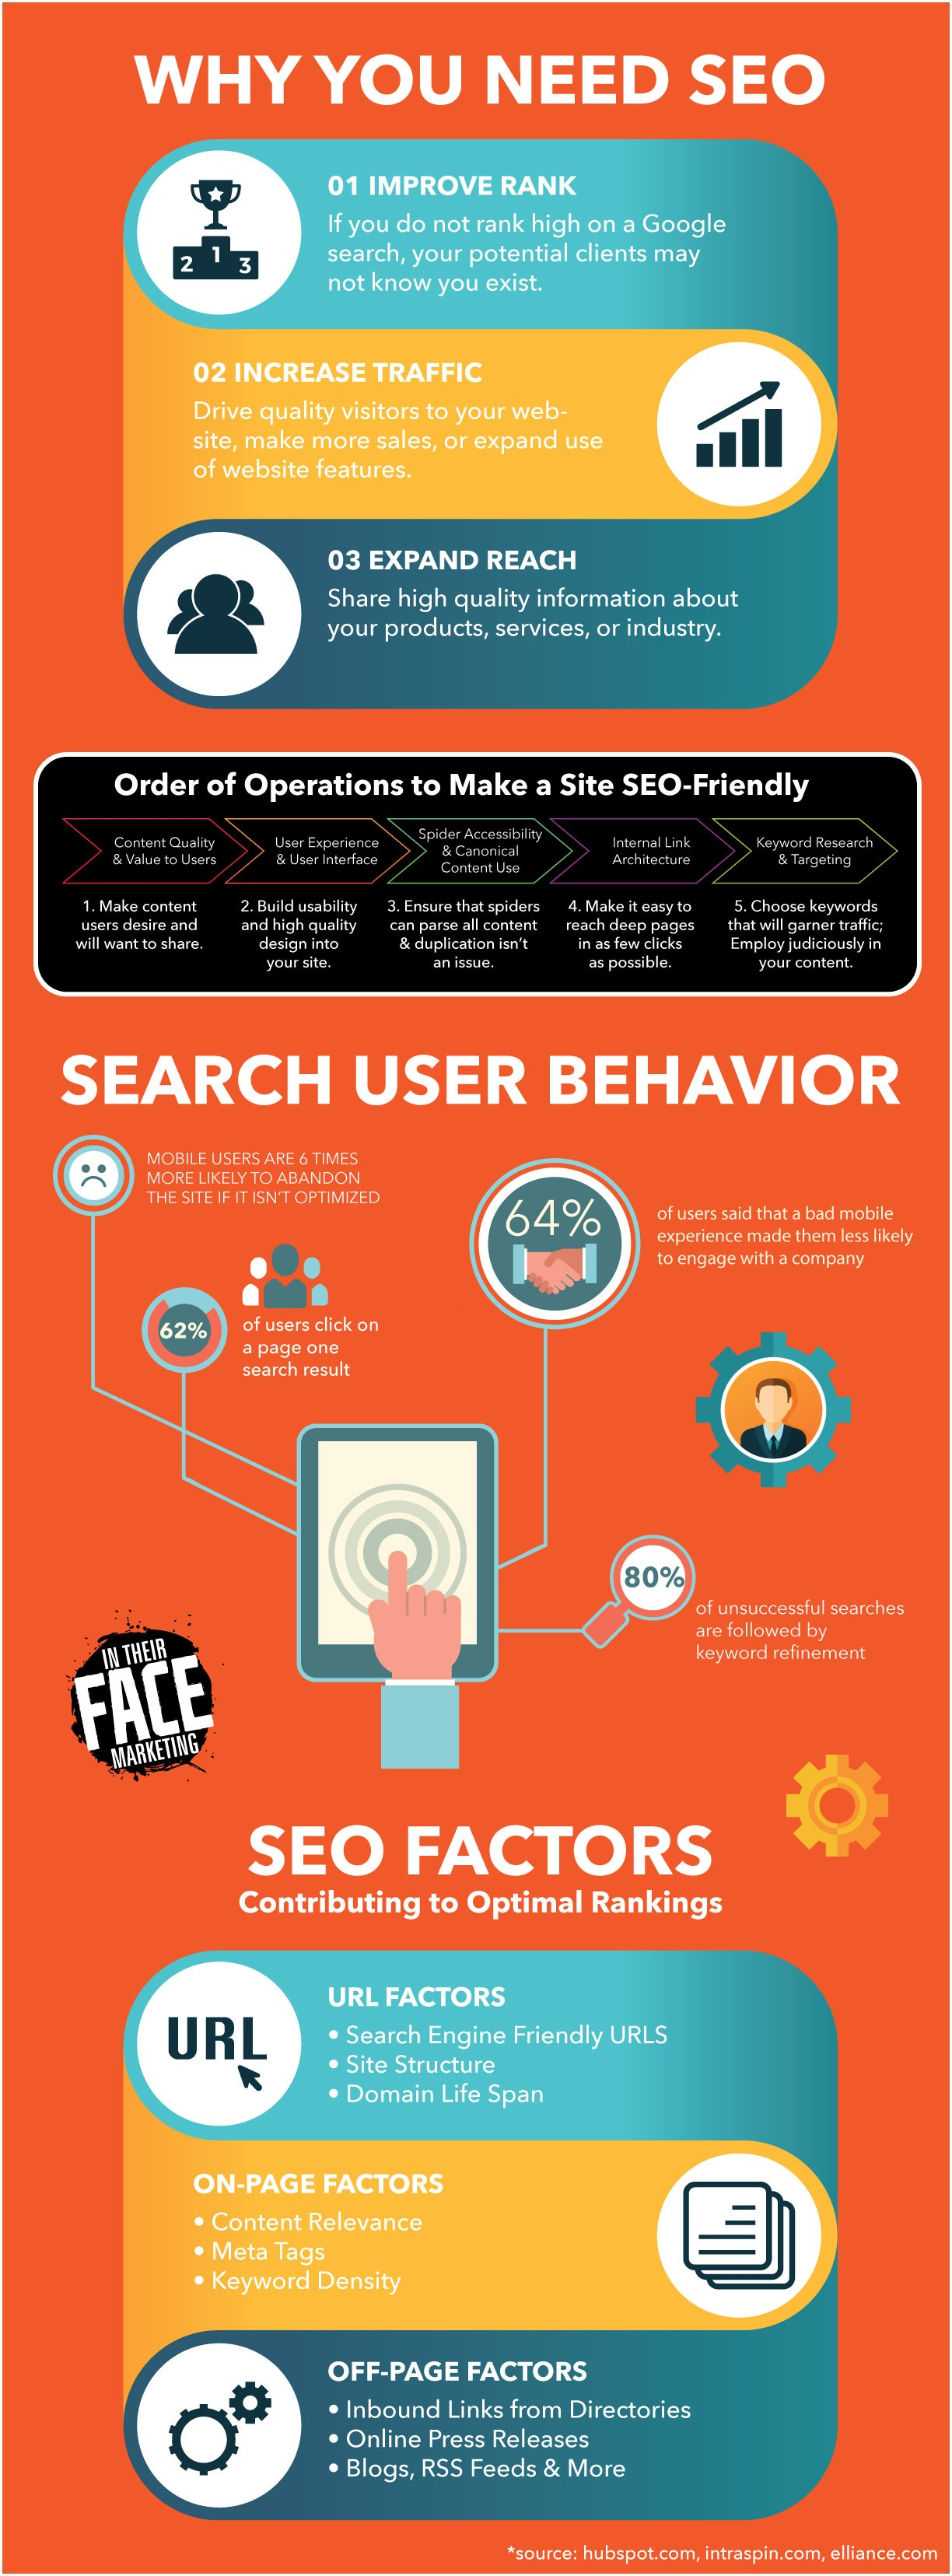 In_Their_Face_Marketing_SEO_infographic